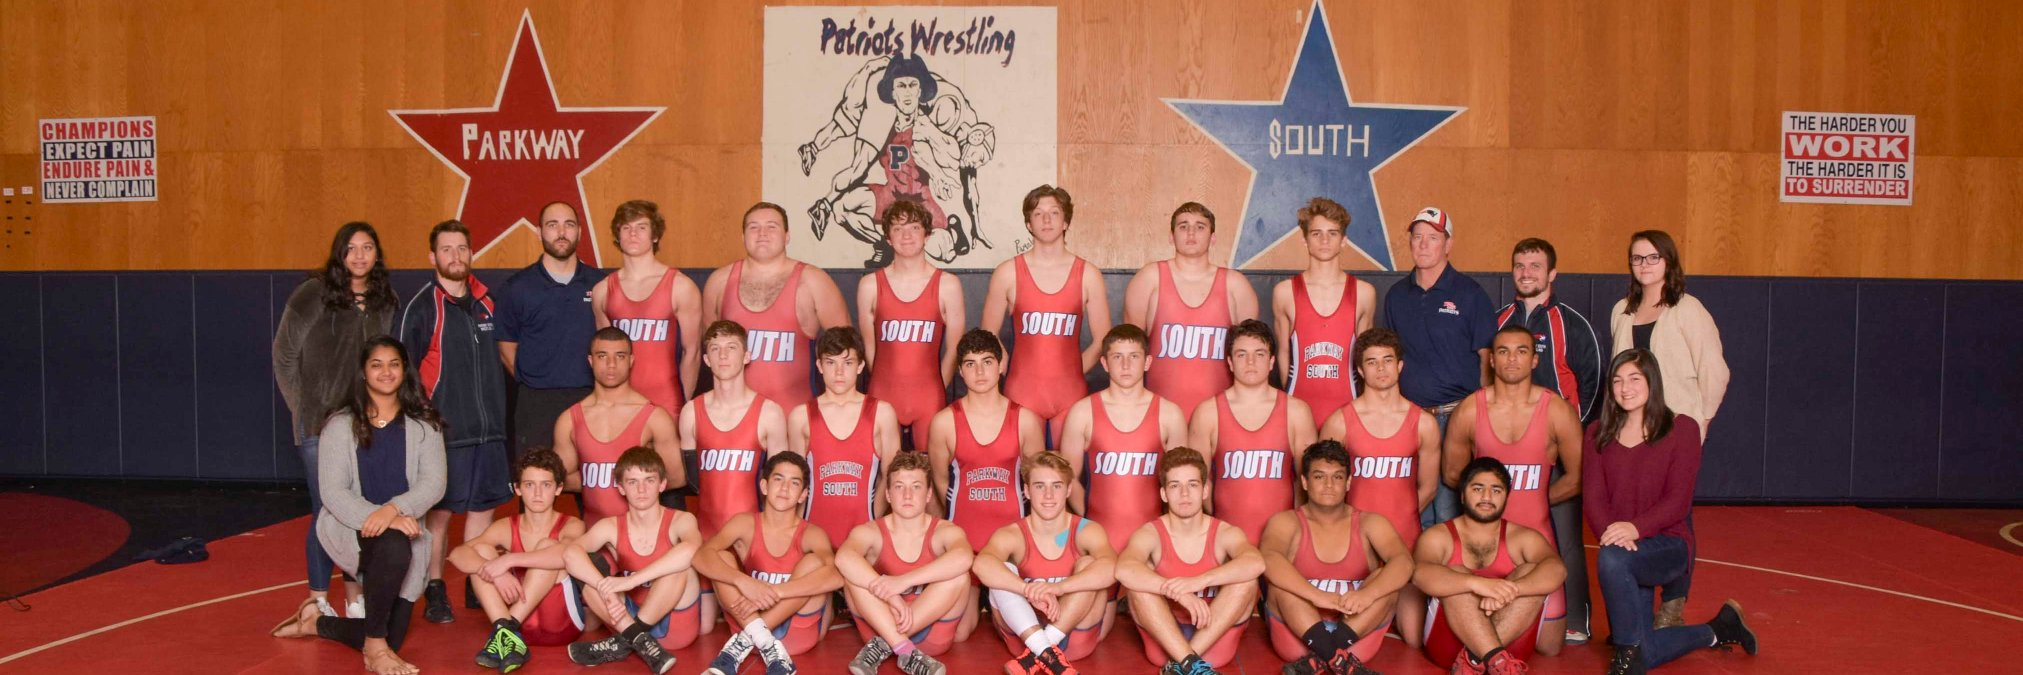 Let's Go!! You're ready, time to punch your ticket to State! We believe in you, Patriots! #PSouthWrestling… https://t.co/YxMnyuZK4z